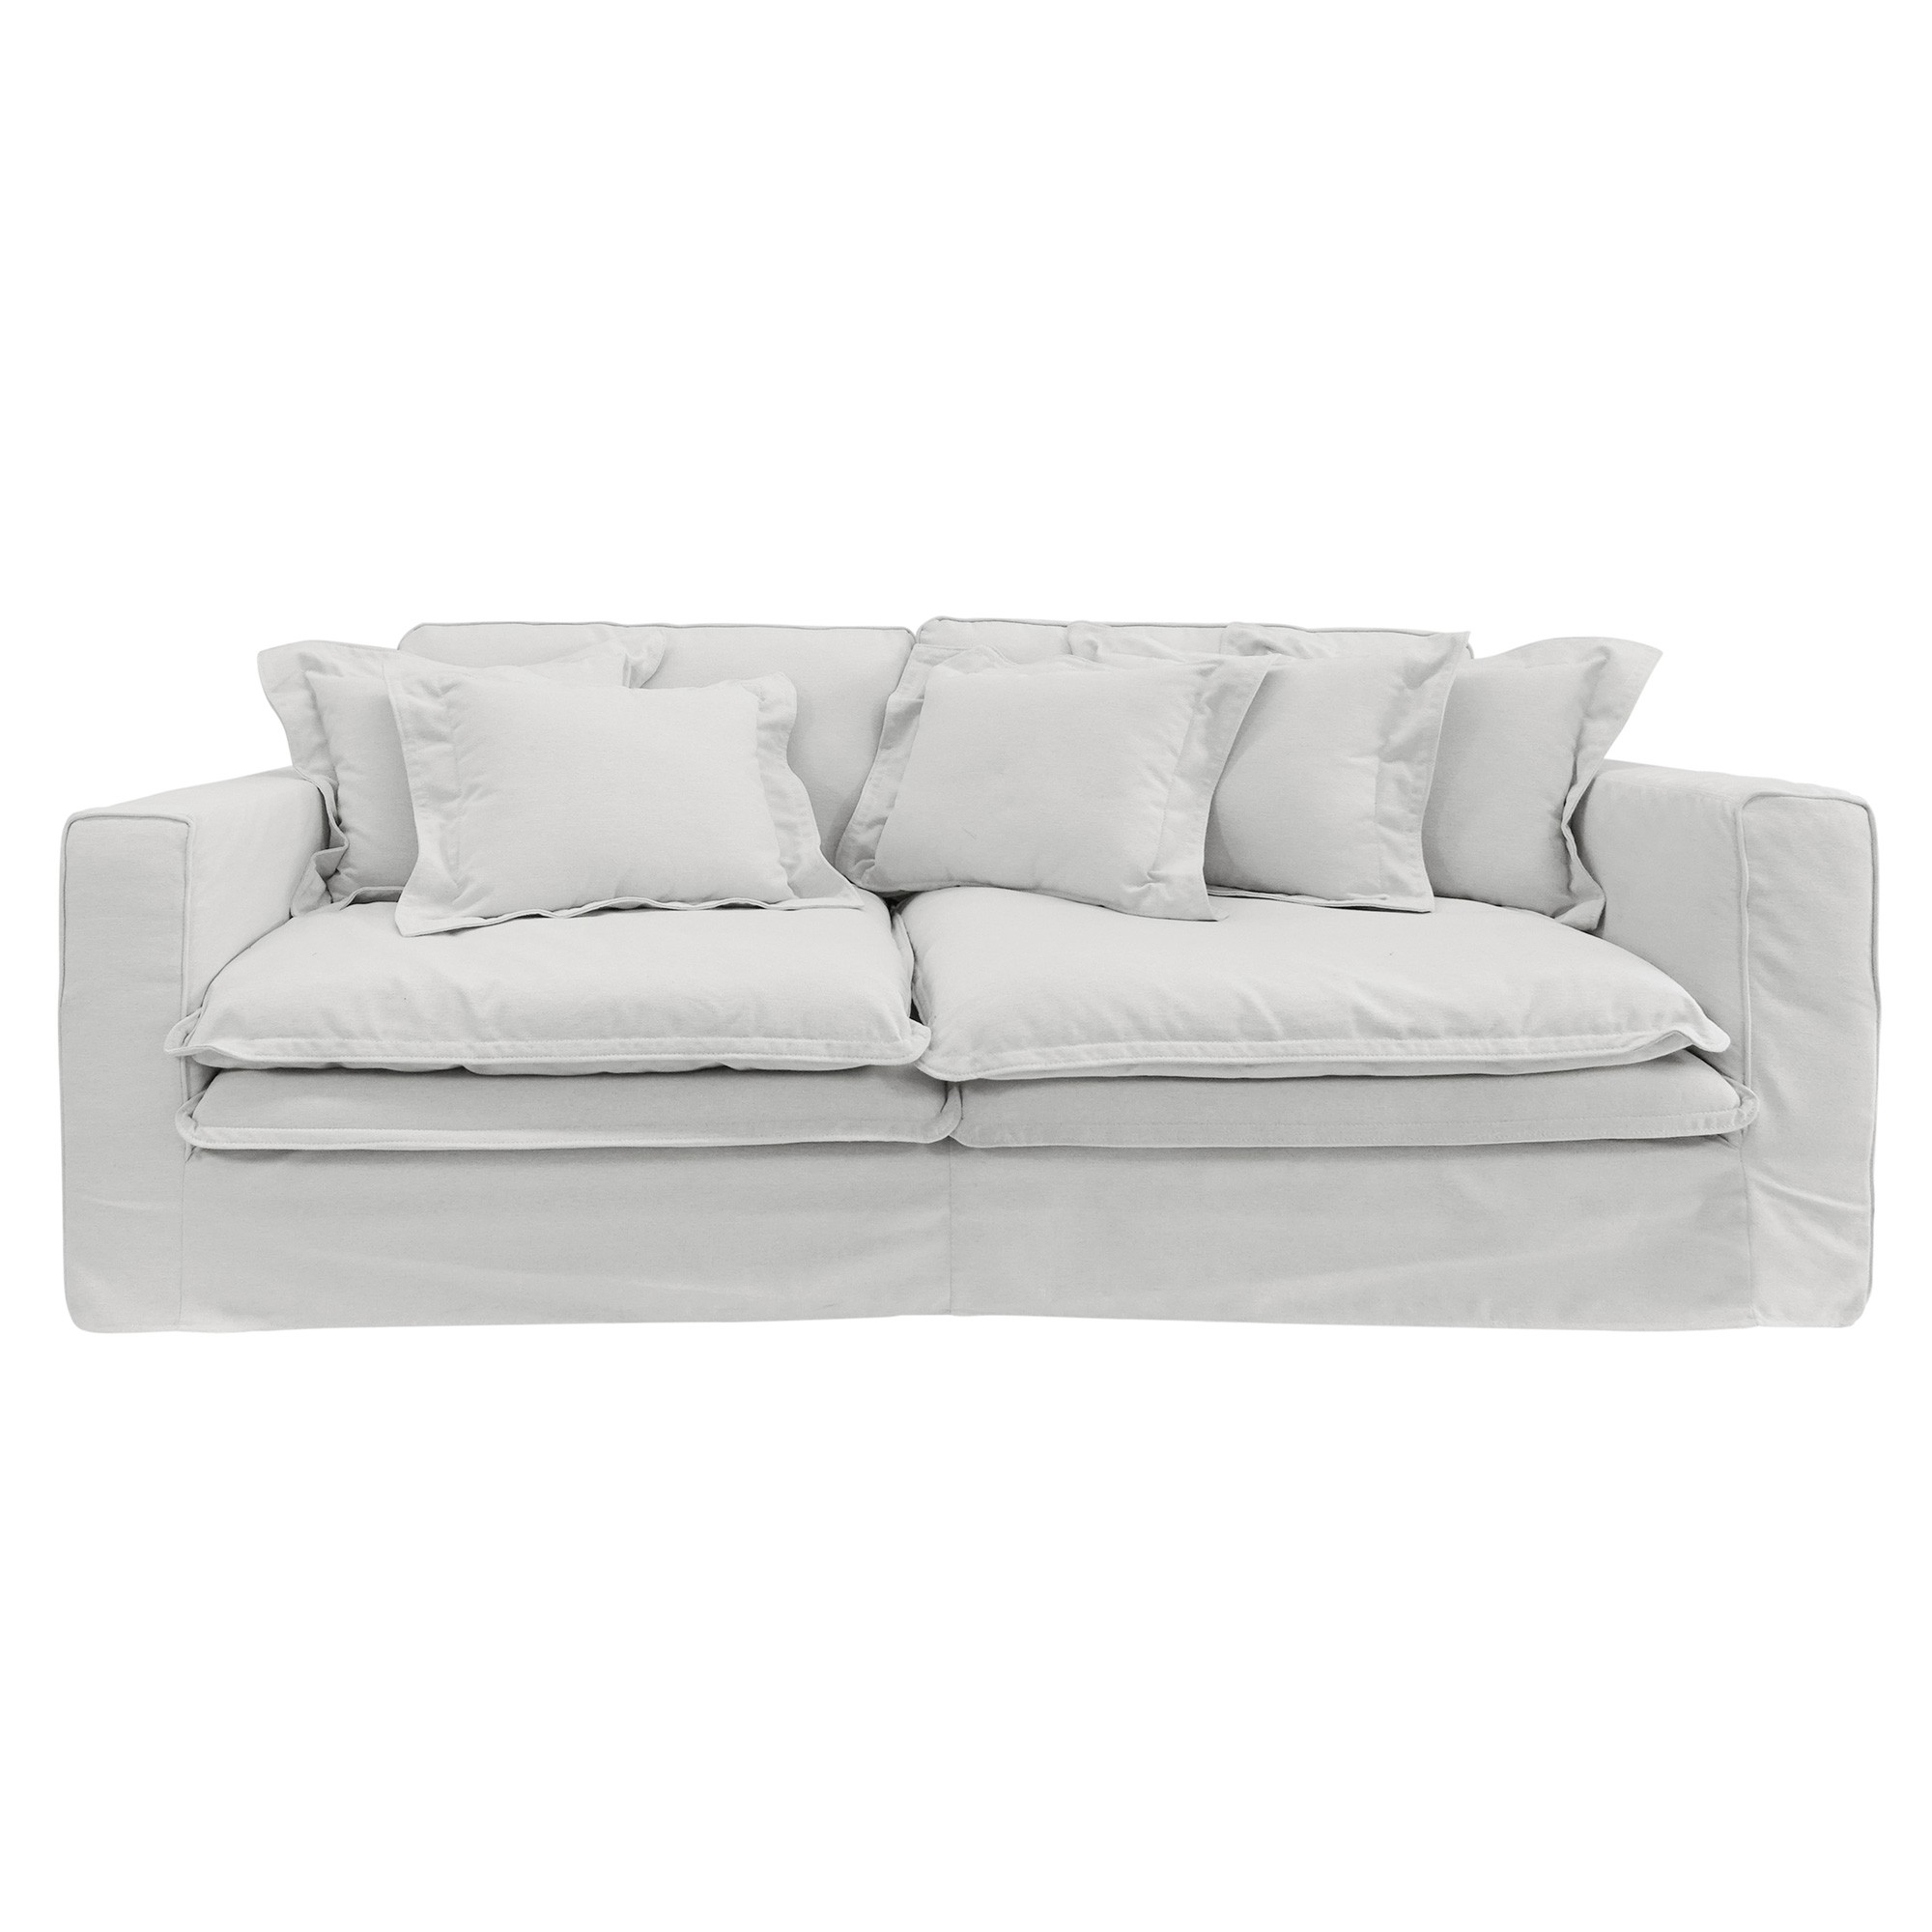 Joshua Fabric Sofa, 3 Seater